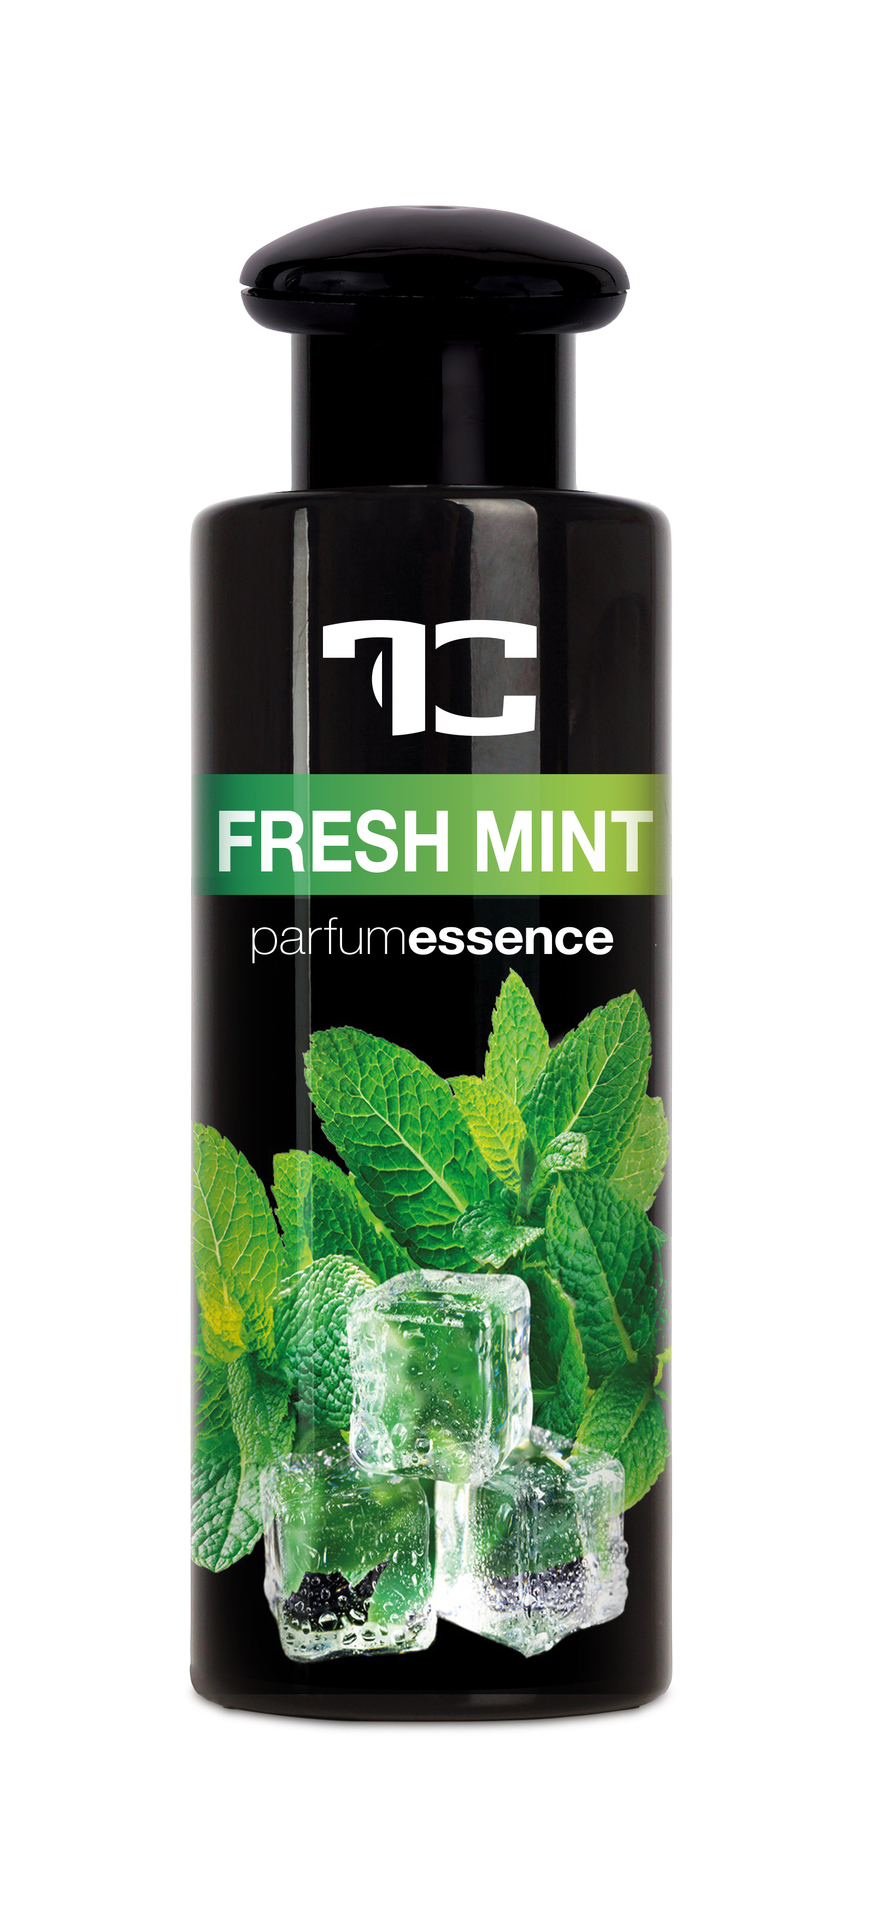 https://dedra.blob.core.windows.net/cms/ContentItems/13189_parfum-essence-fresh-mint-parfemova-esence/images/fc0200-fresh-mint-parfum-essence-black.jpg